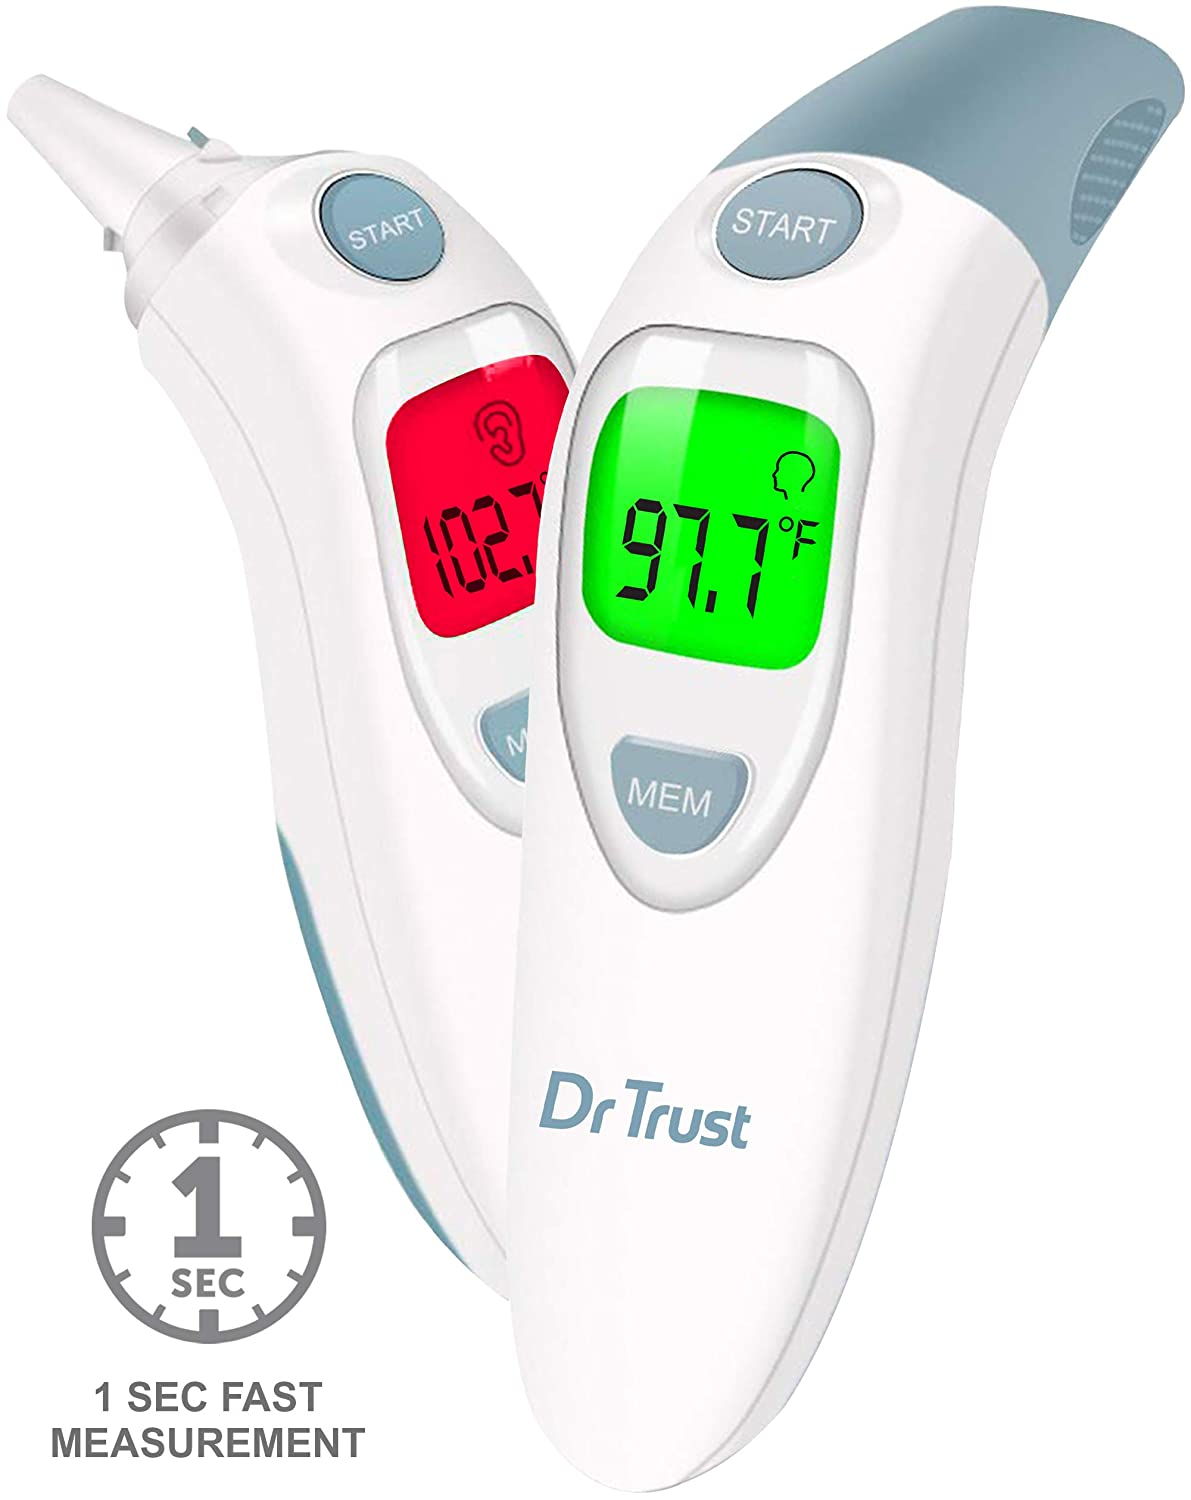 Dr. Trust Clinical Digital Ear Infrared Thermometer